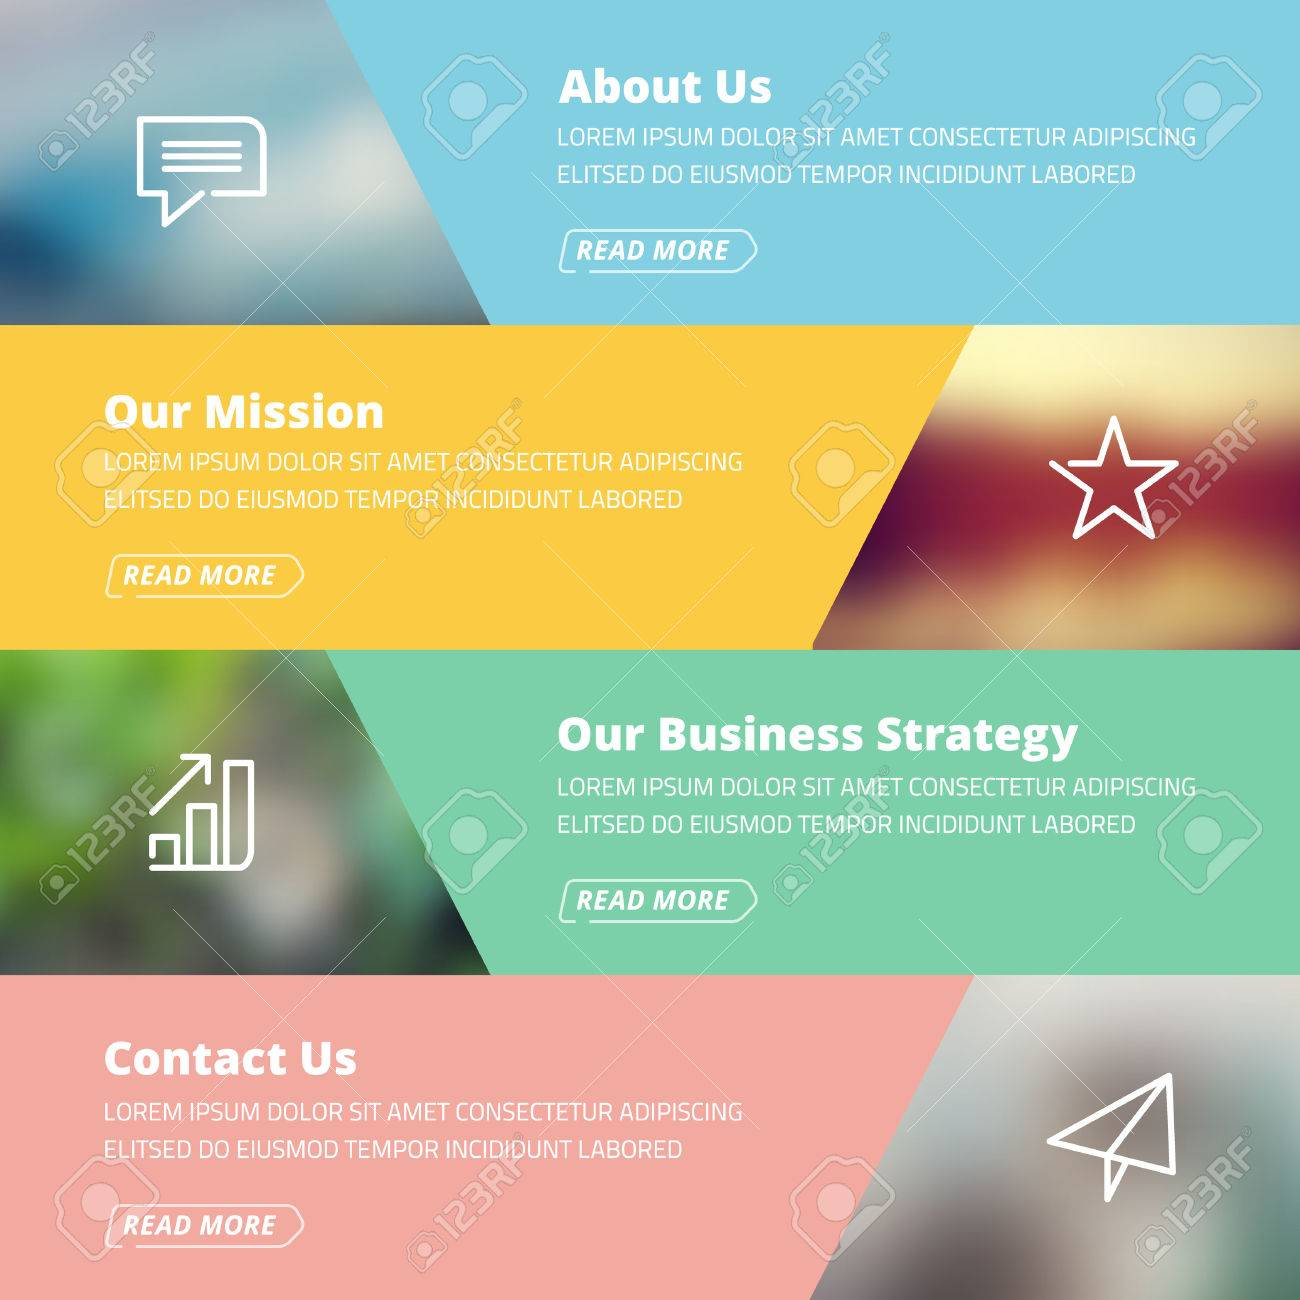 Flat Design Concept For Website Template - About Us, Projects ...